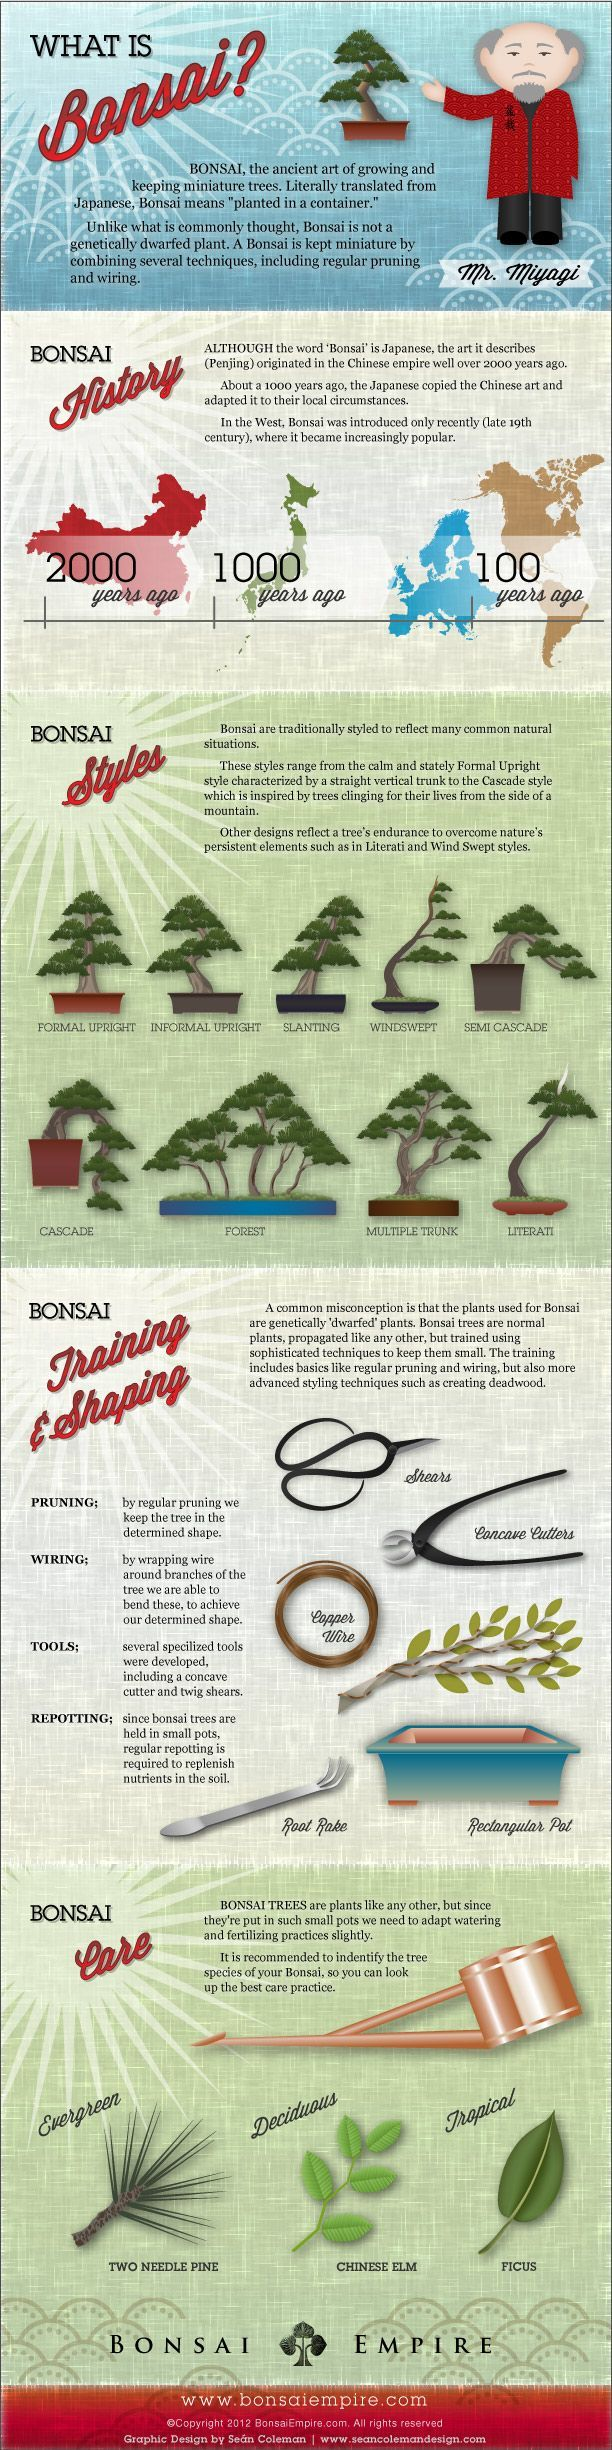 Bonsai Trees #Infographic